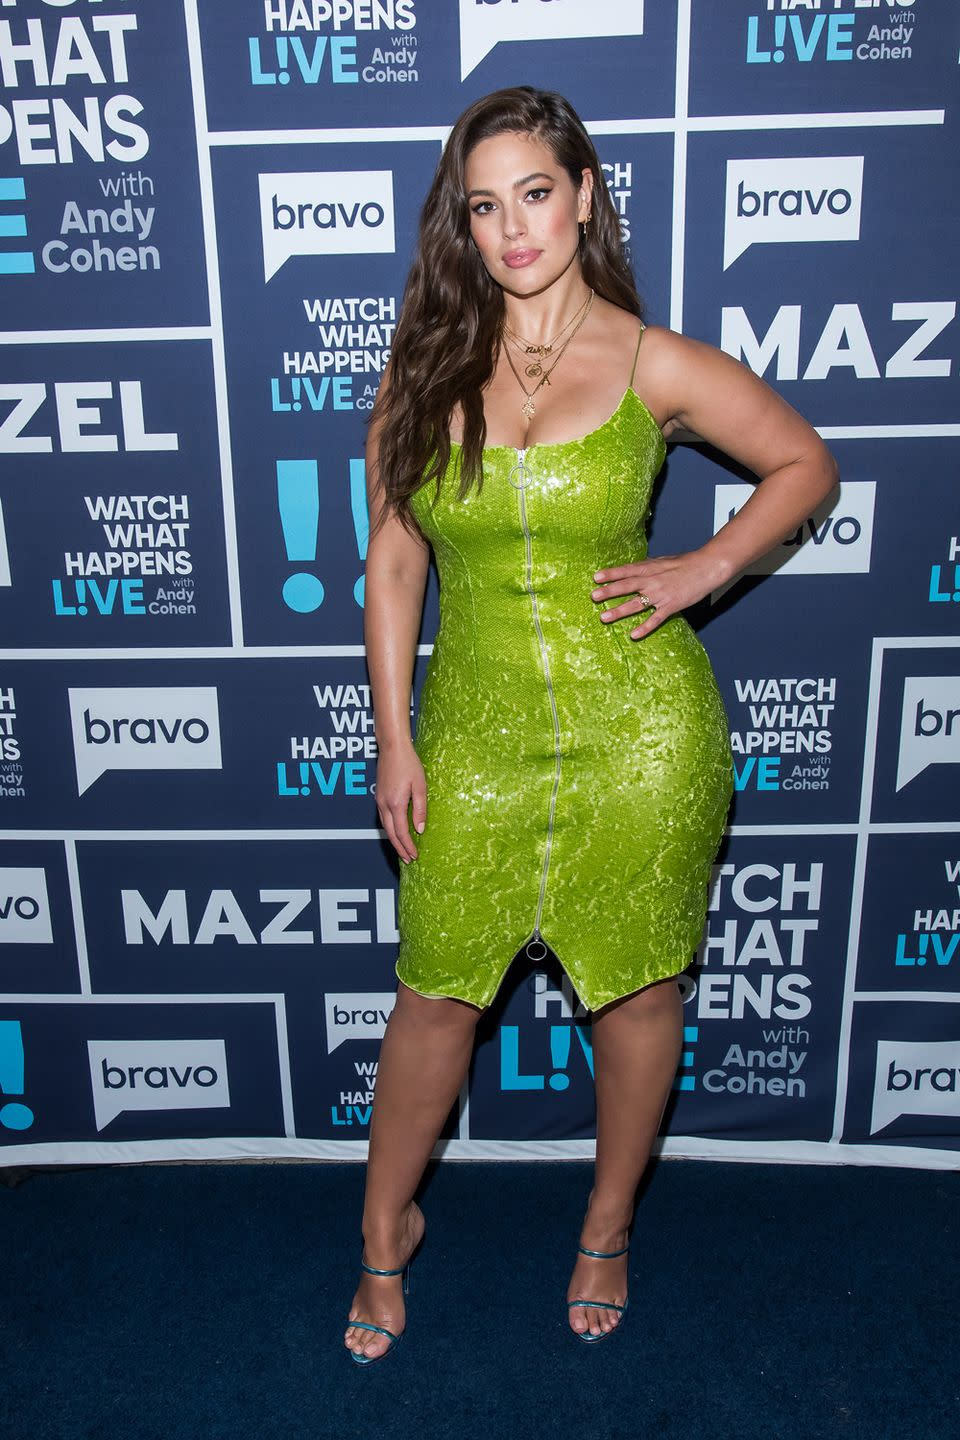 <p>Filming Watch What Happens Live with Andy Cohen: A green sequinned mini dress might sound like an absolutely terrible idea, but with a body like hers, Ashley managed to pull it off. She paired her green look with blue strappy heels and layered gold chains.</p>